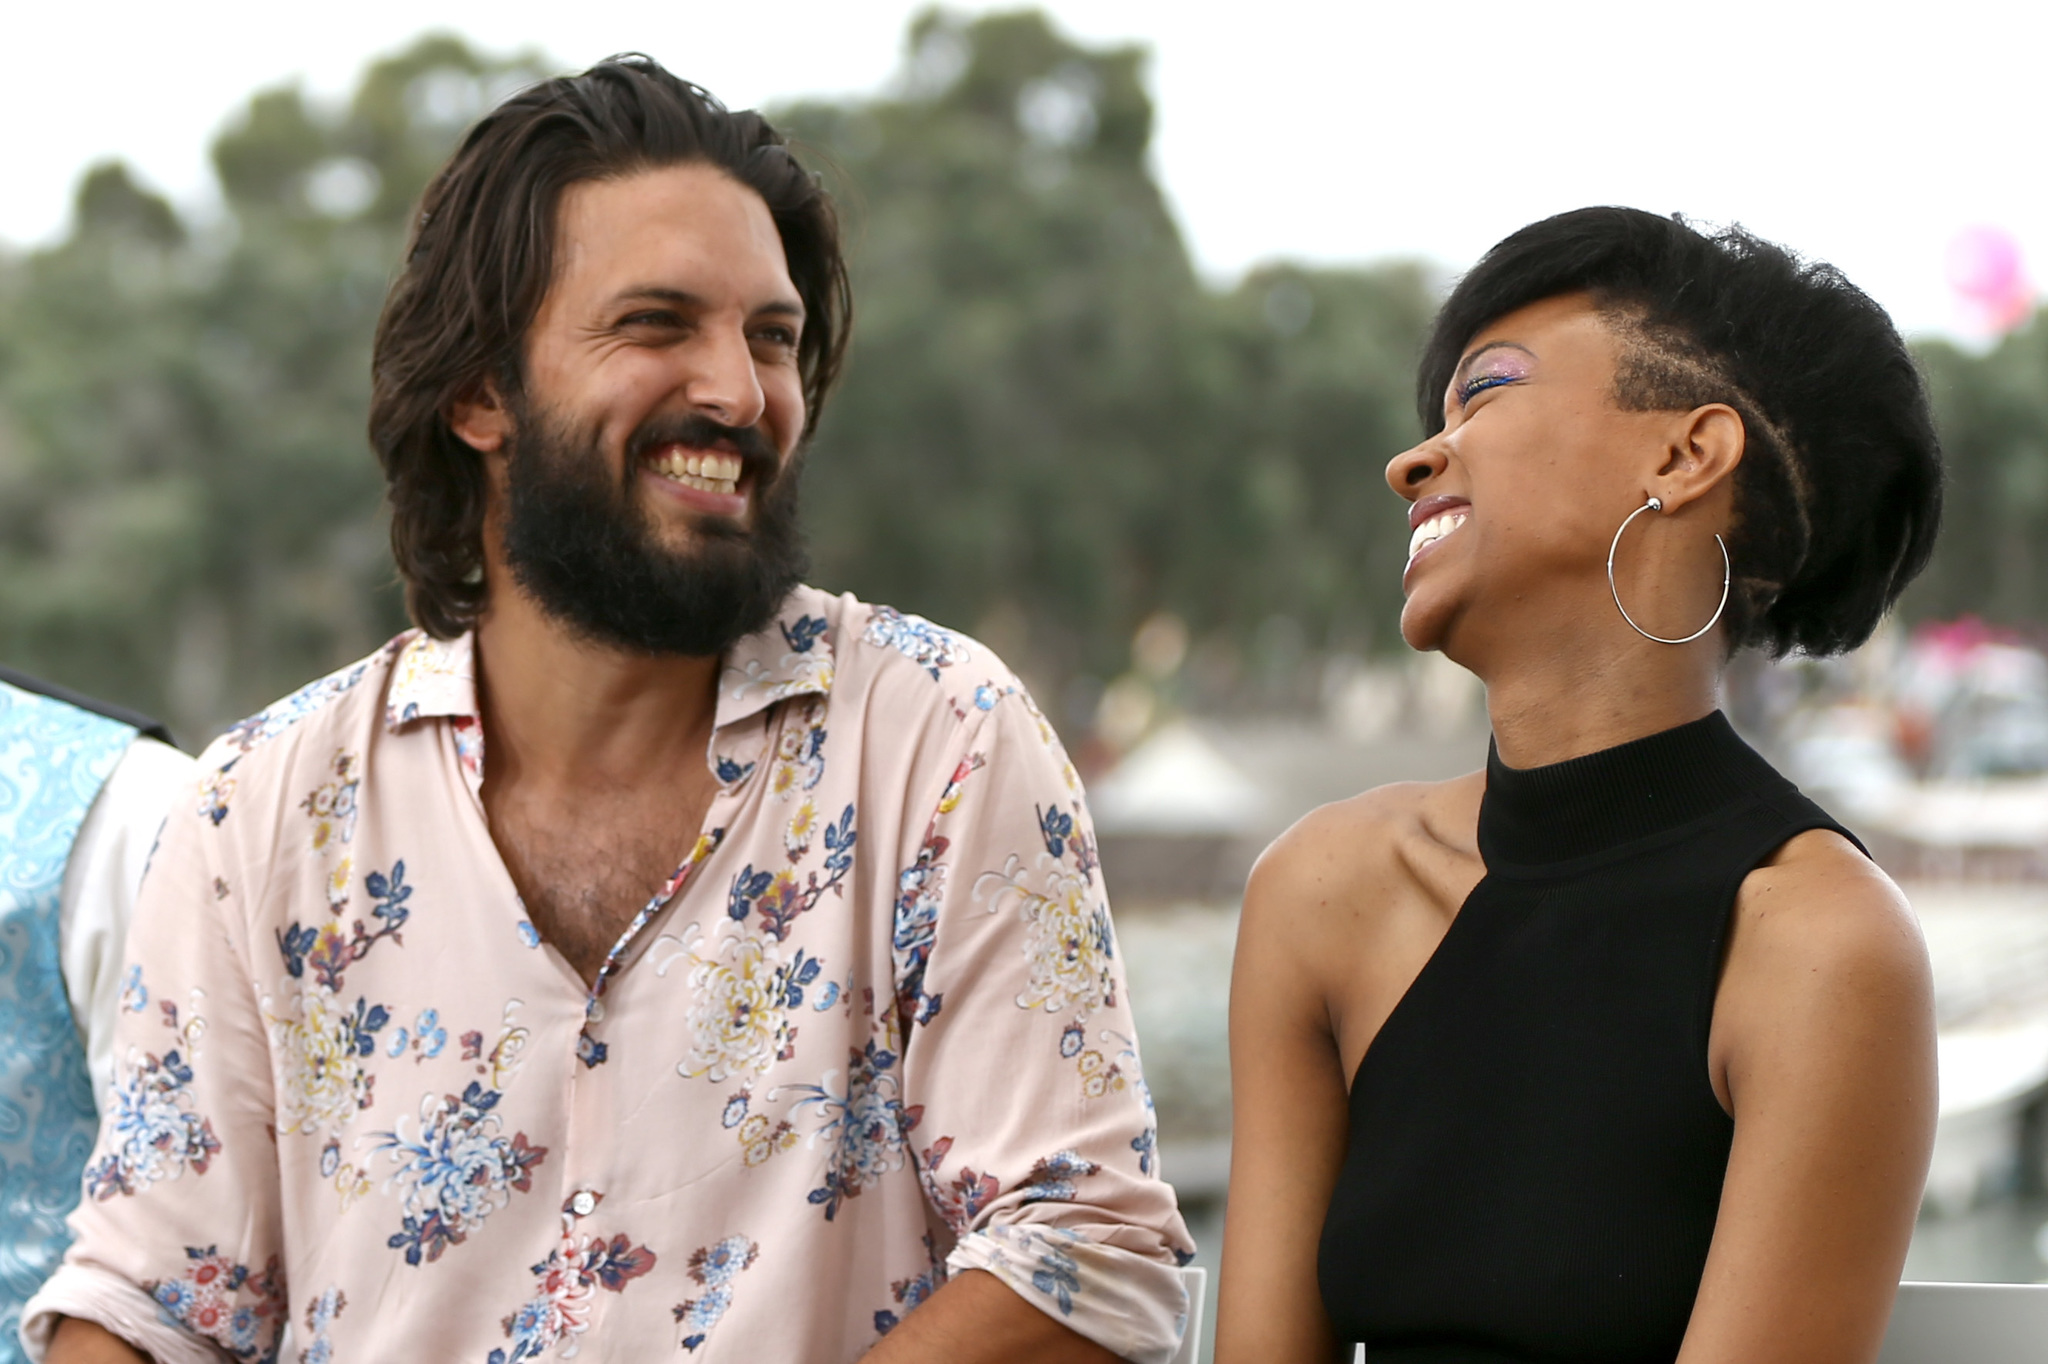 Sonequa Martin-Green and Shazad Latif at an event for Star Trek: Discovery (2017)